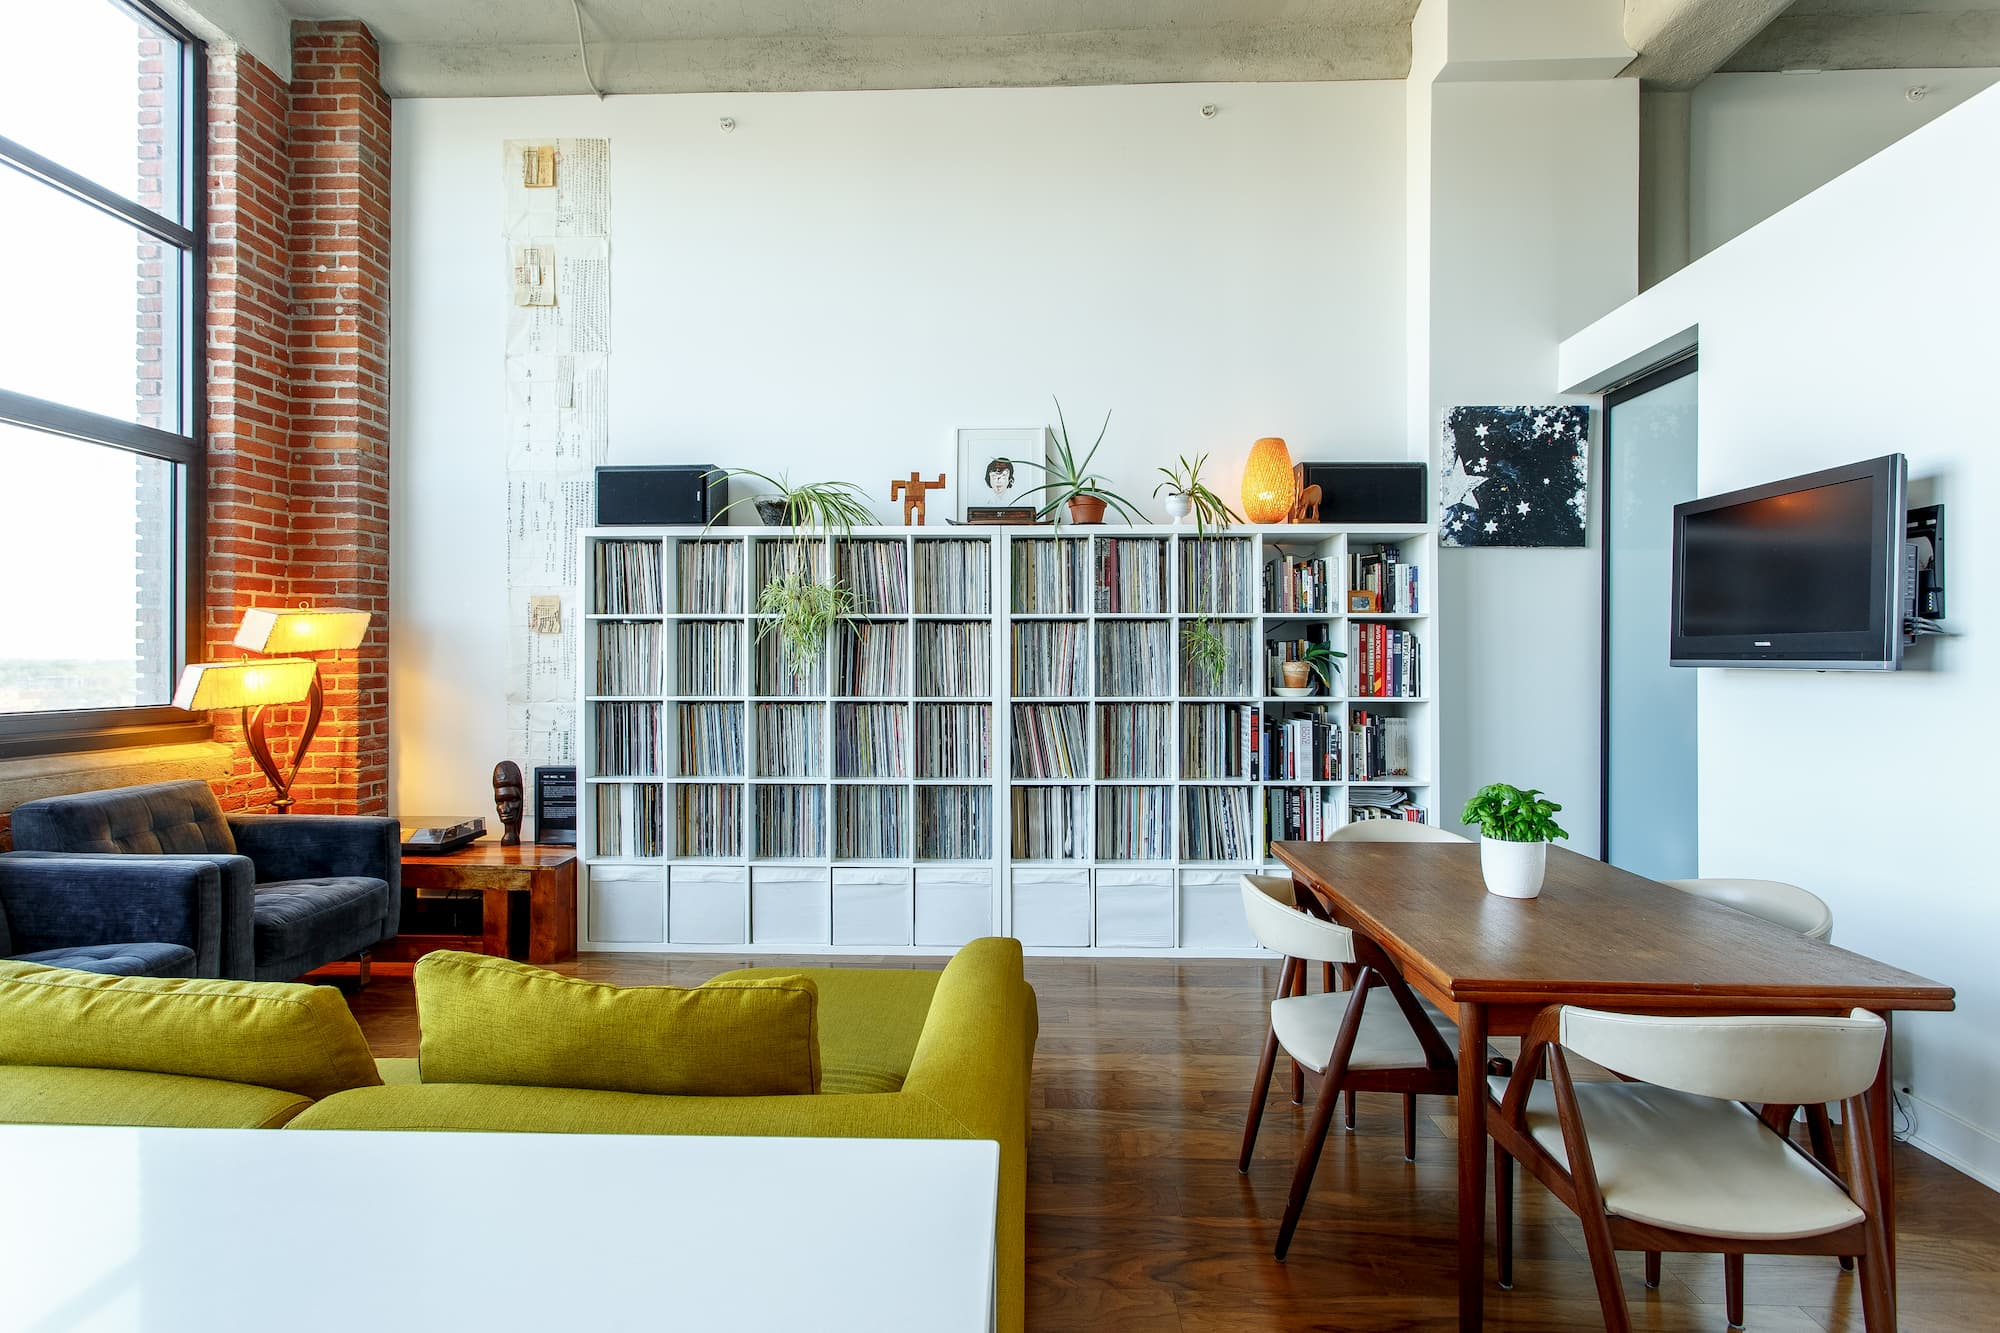 Well-maintained corner in industrial living room styled with eclectic furniture and décor elements, pops of bright color